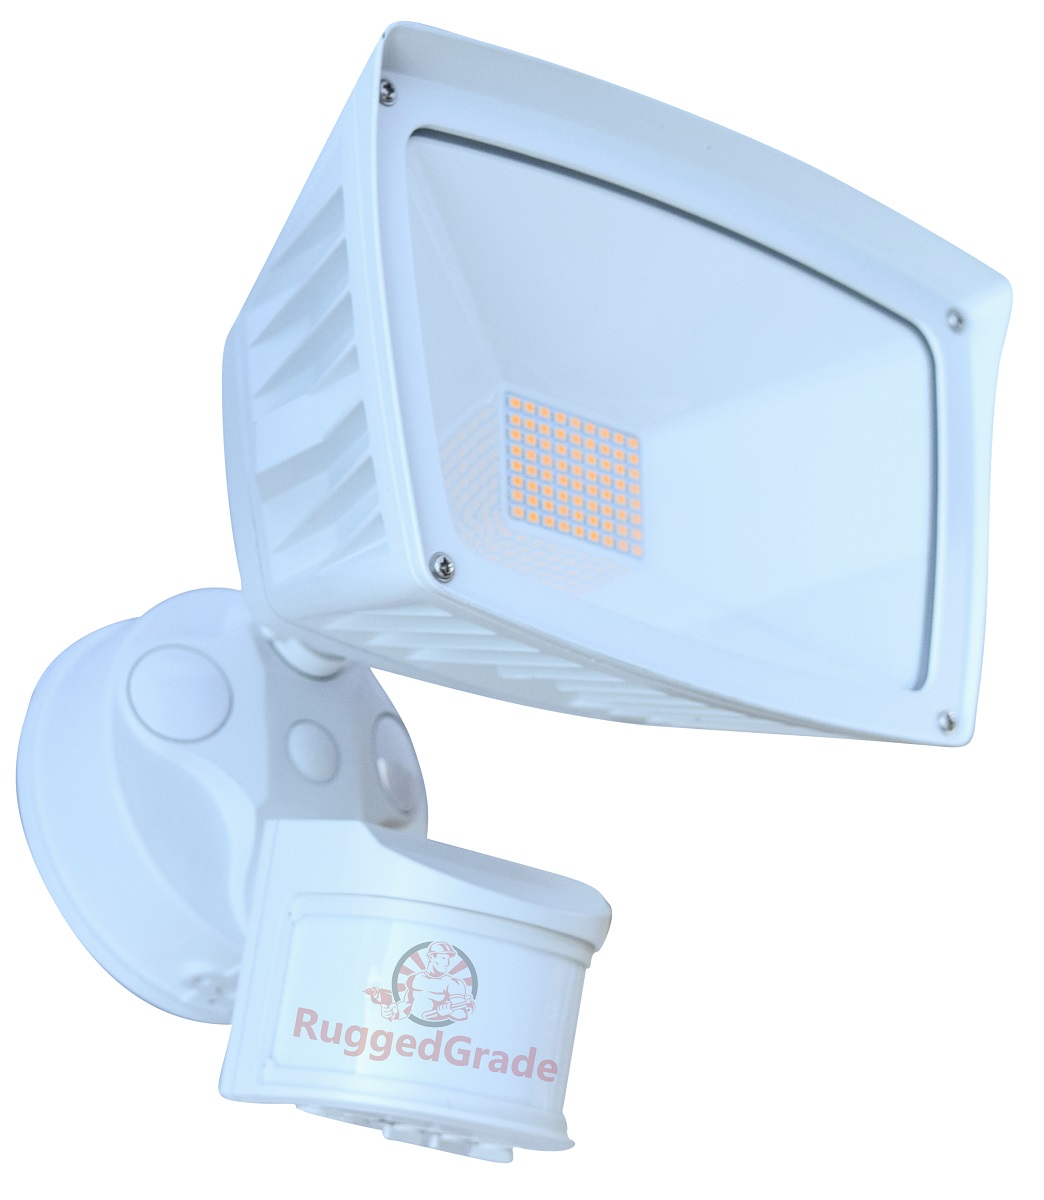 40 Watt Led 40 Watt Led Motion Sensor Flood Light 4 800 Lumens Led Flood Light 3000k White